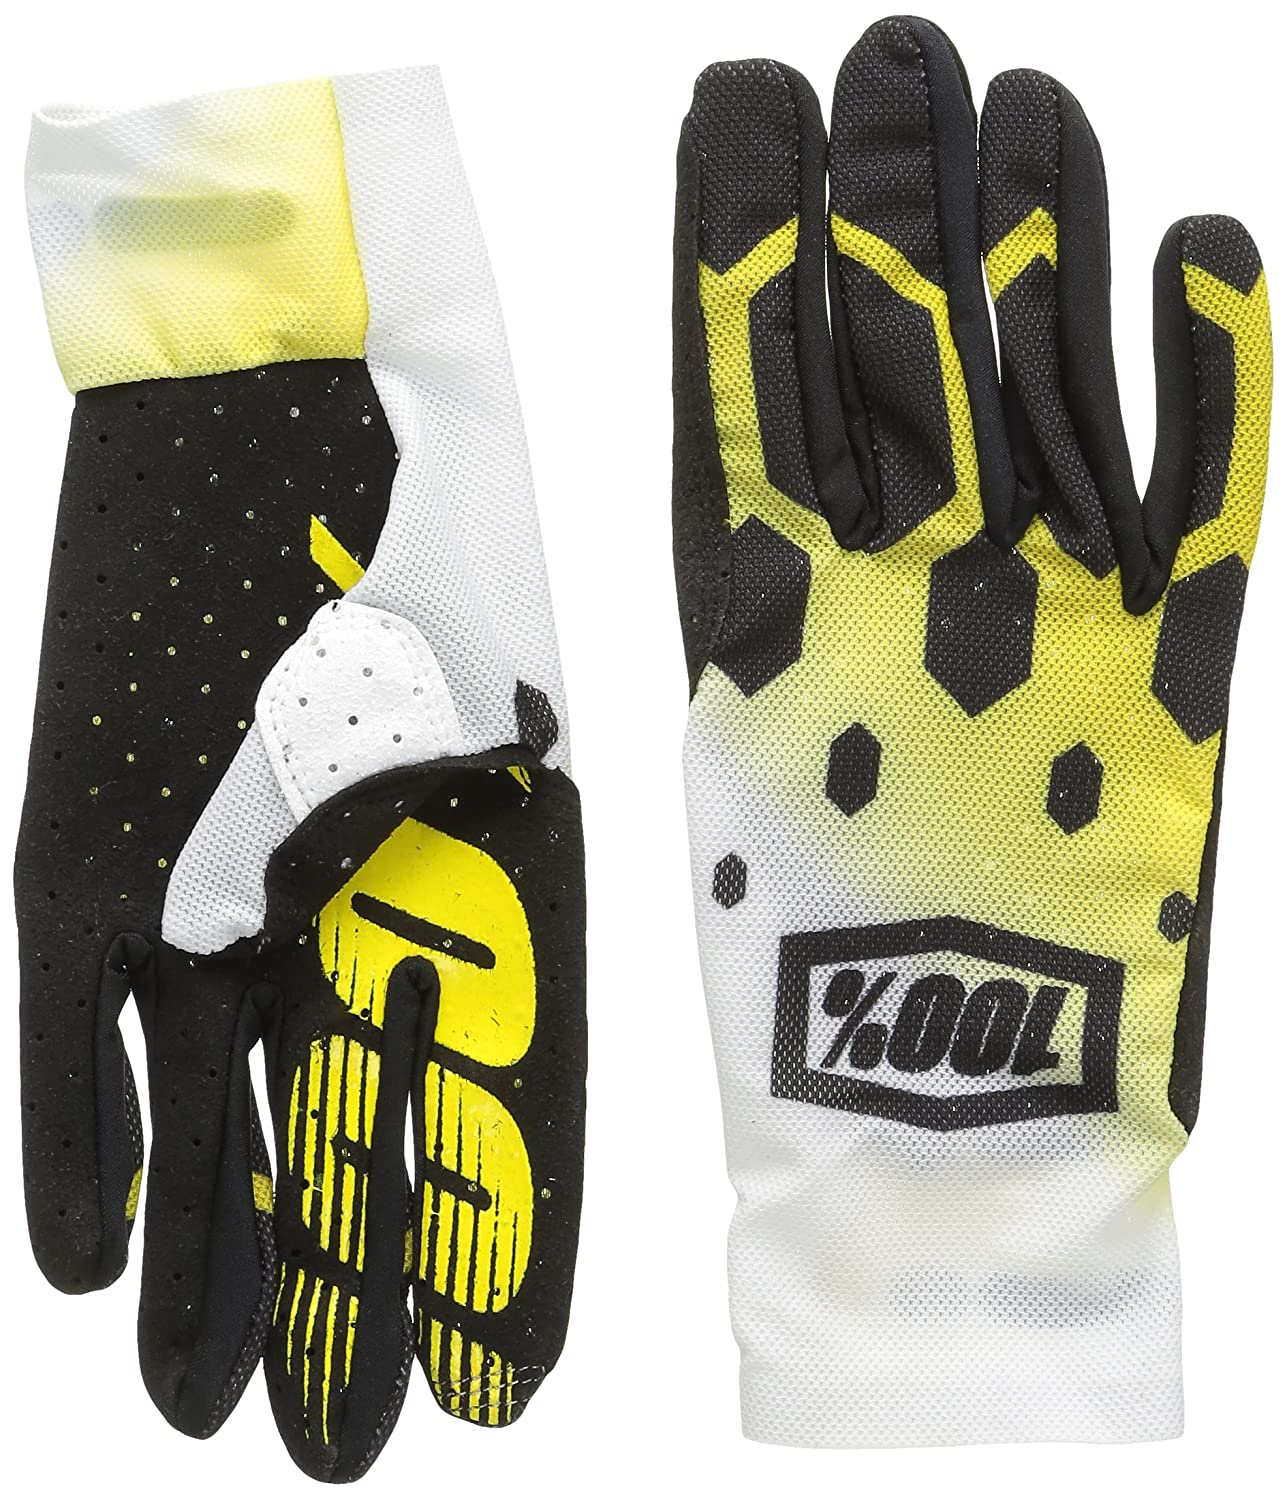 100 % Celium Gloves – Men 's B016AWKVJQ  Legacy Yellow Medium